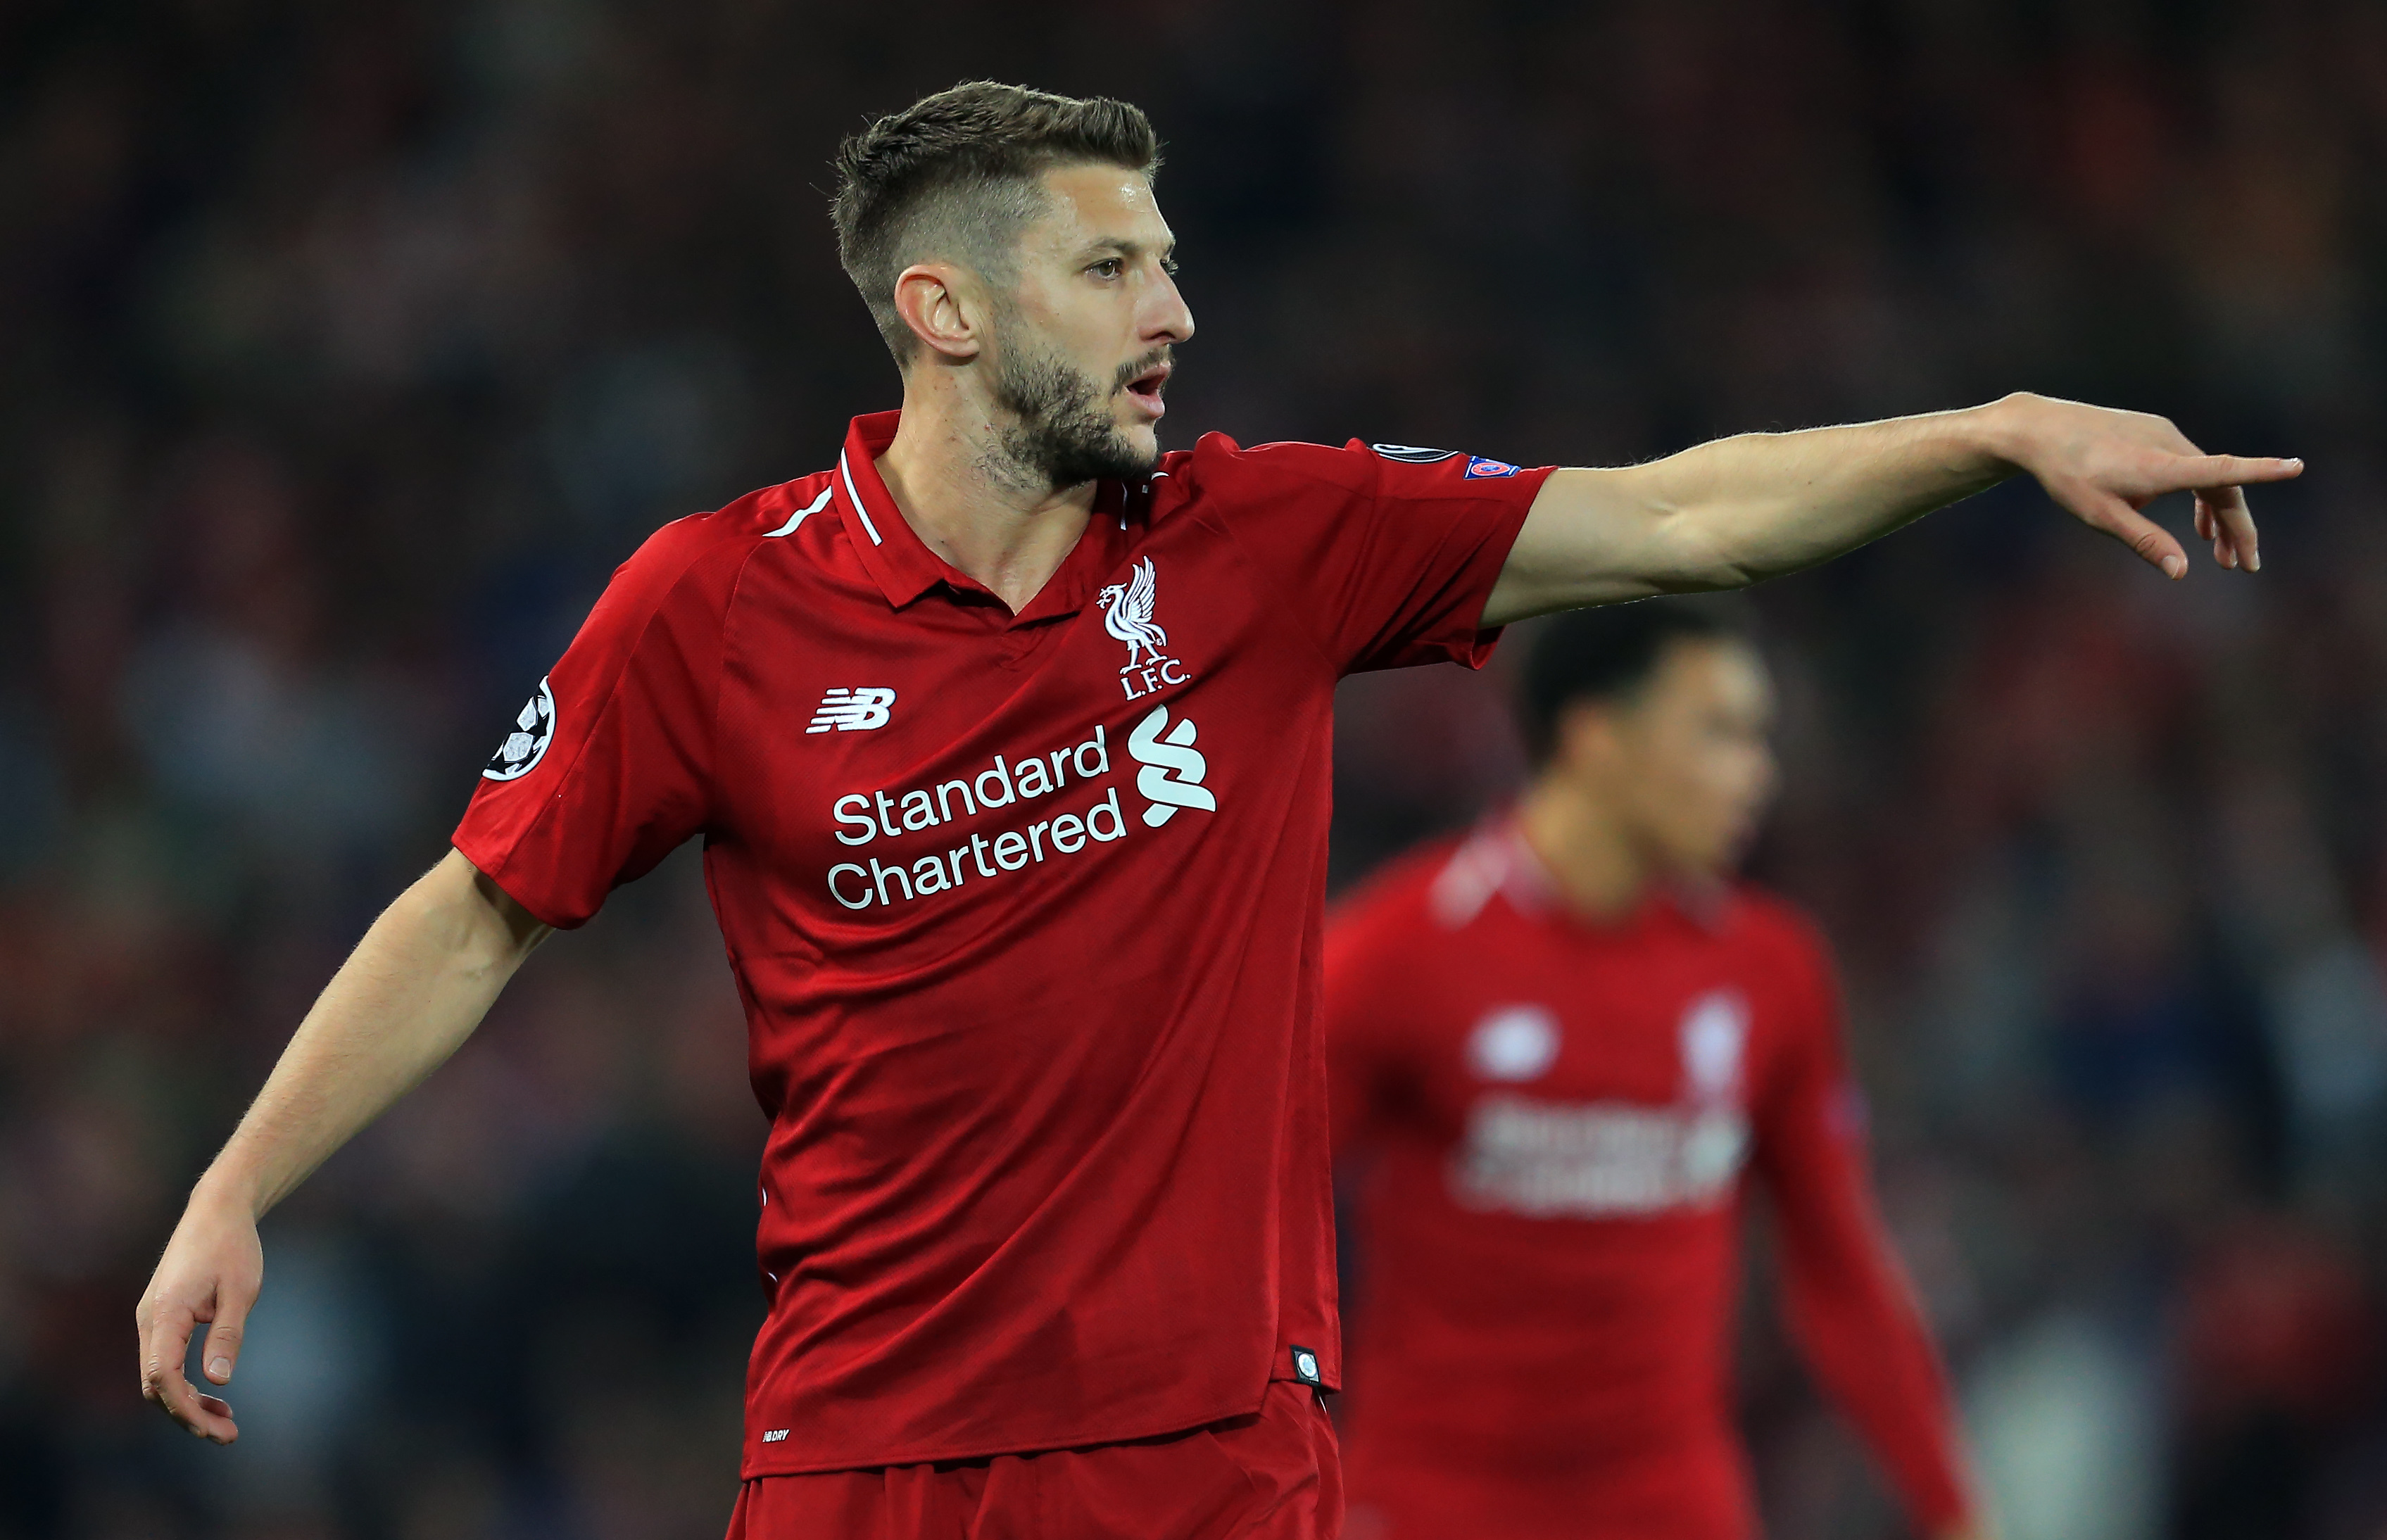 HAS THIS LIVERPOOL TEAM MOVED ON WITHOUT ADAM LALLANA?